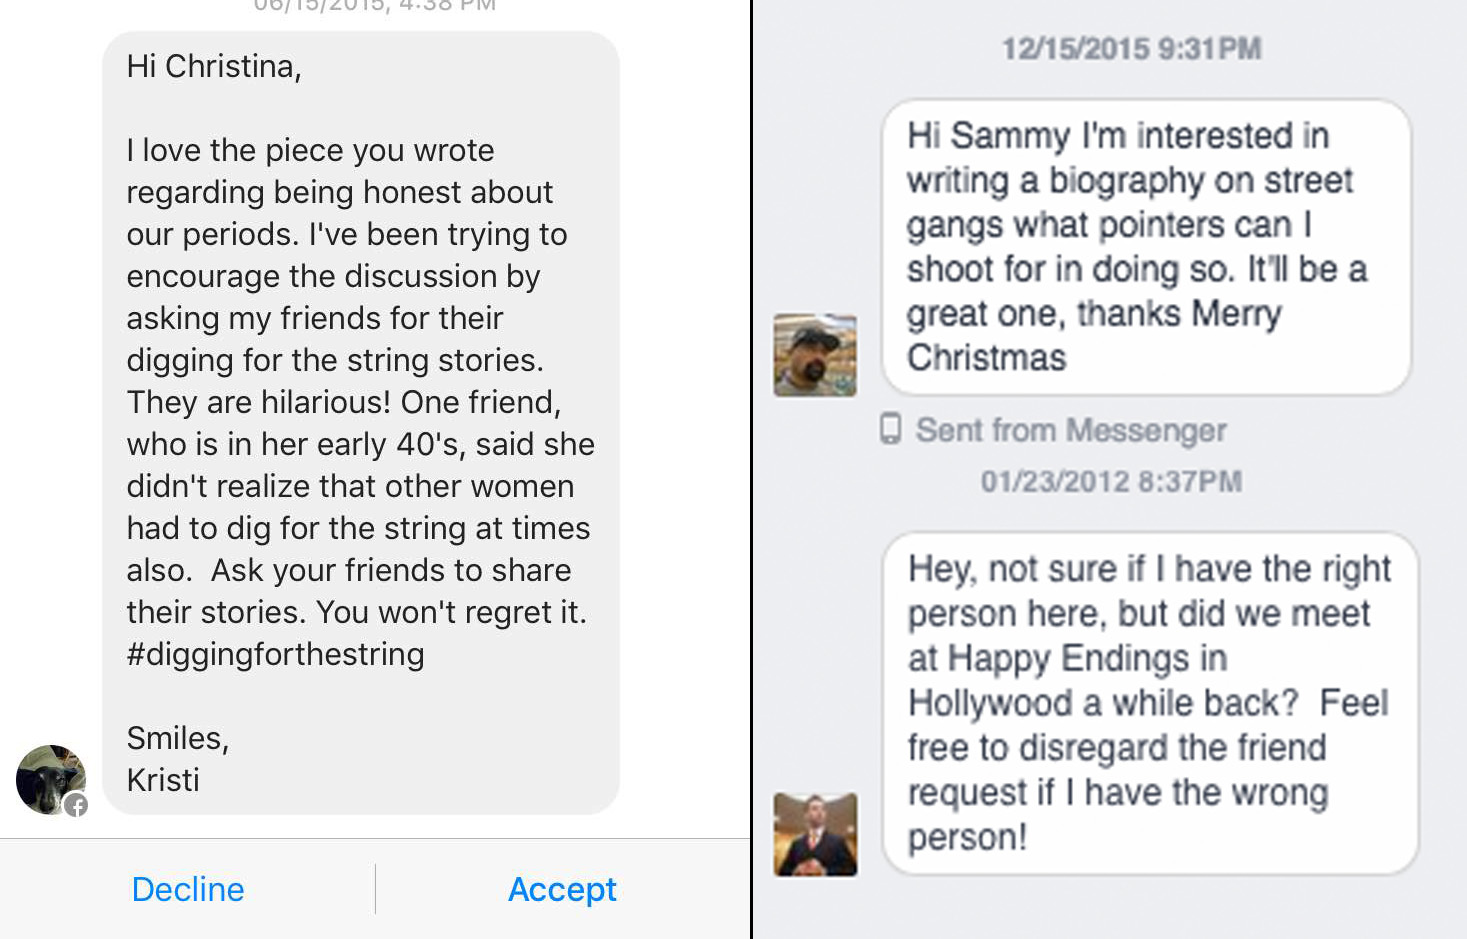 We went into our secret Facebook inboxes and found some really weird things